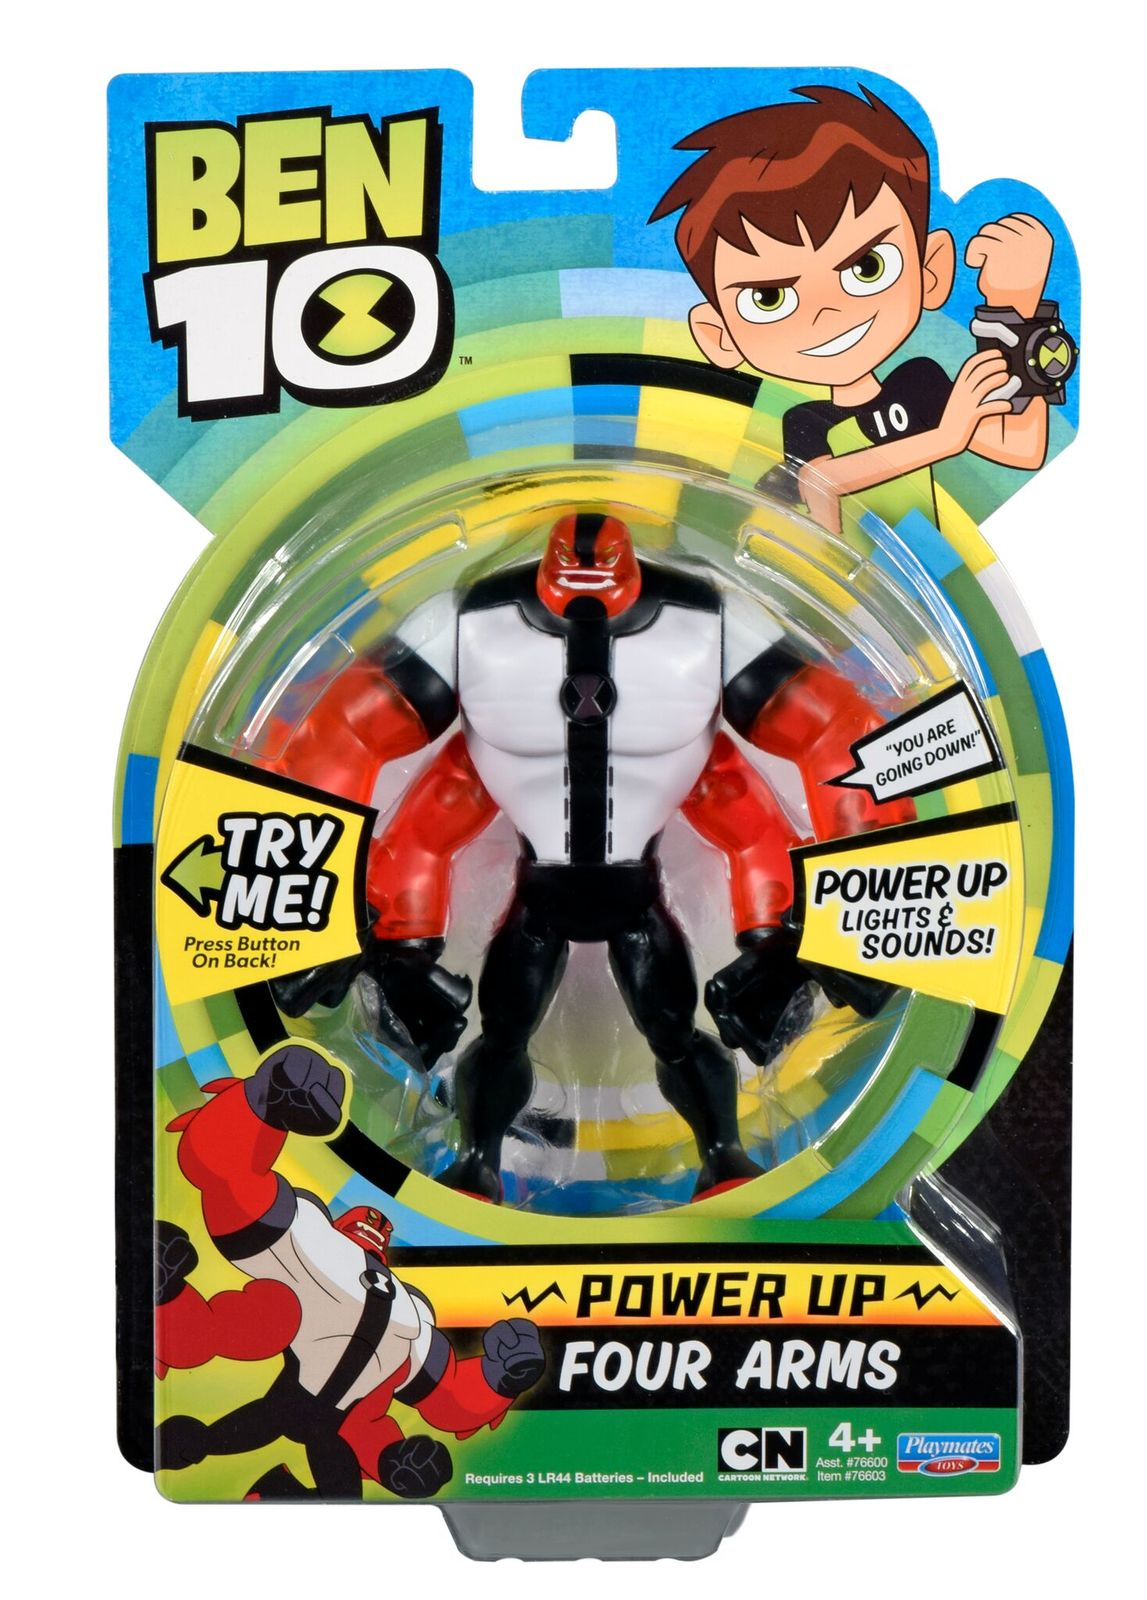 Ben 10: Power Up Deluxe Figures - Four Arms image